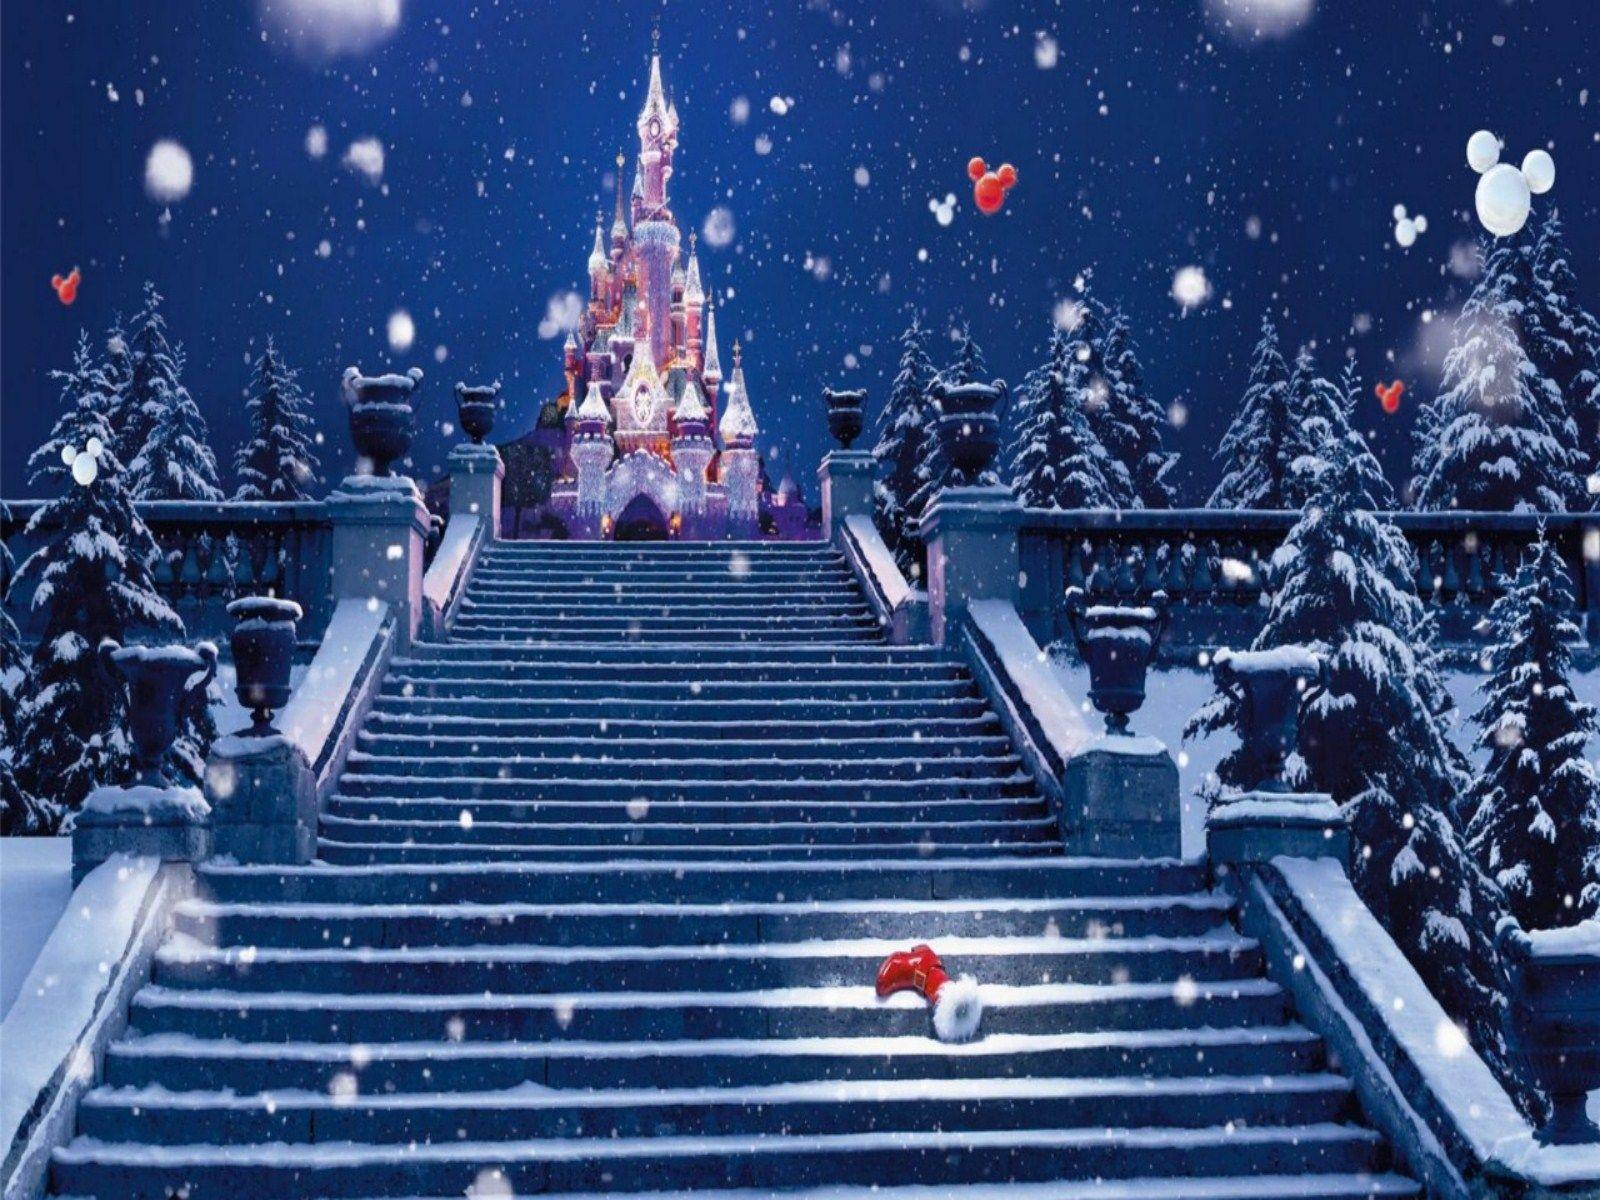 Disney Christmas Wallpapers Desktop 1600x1200